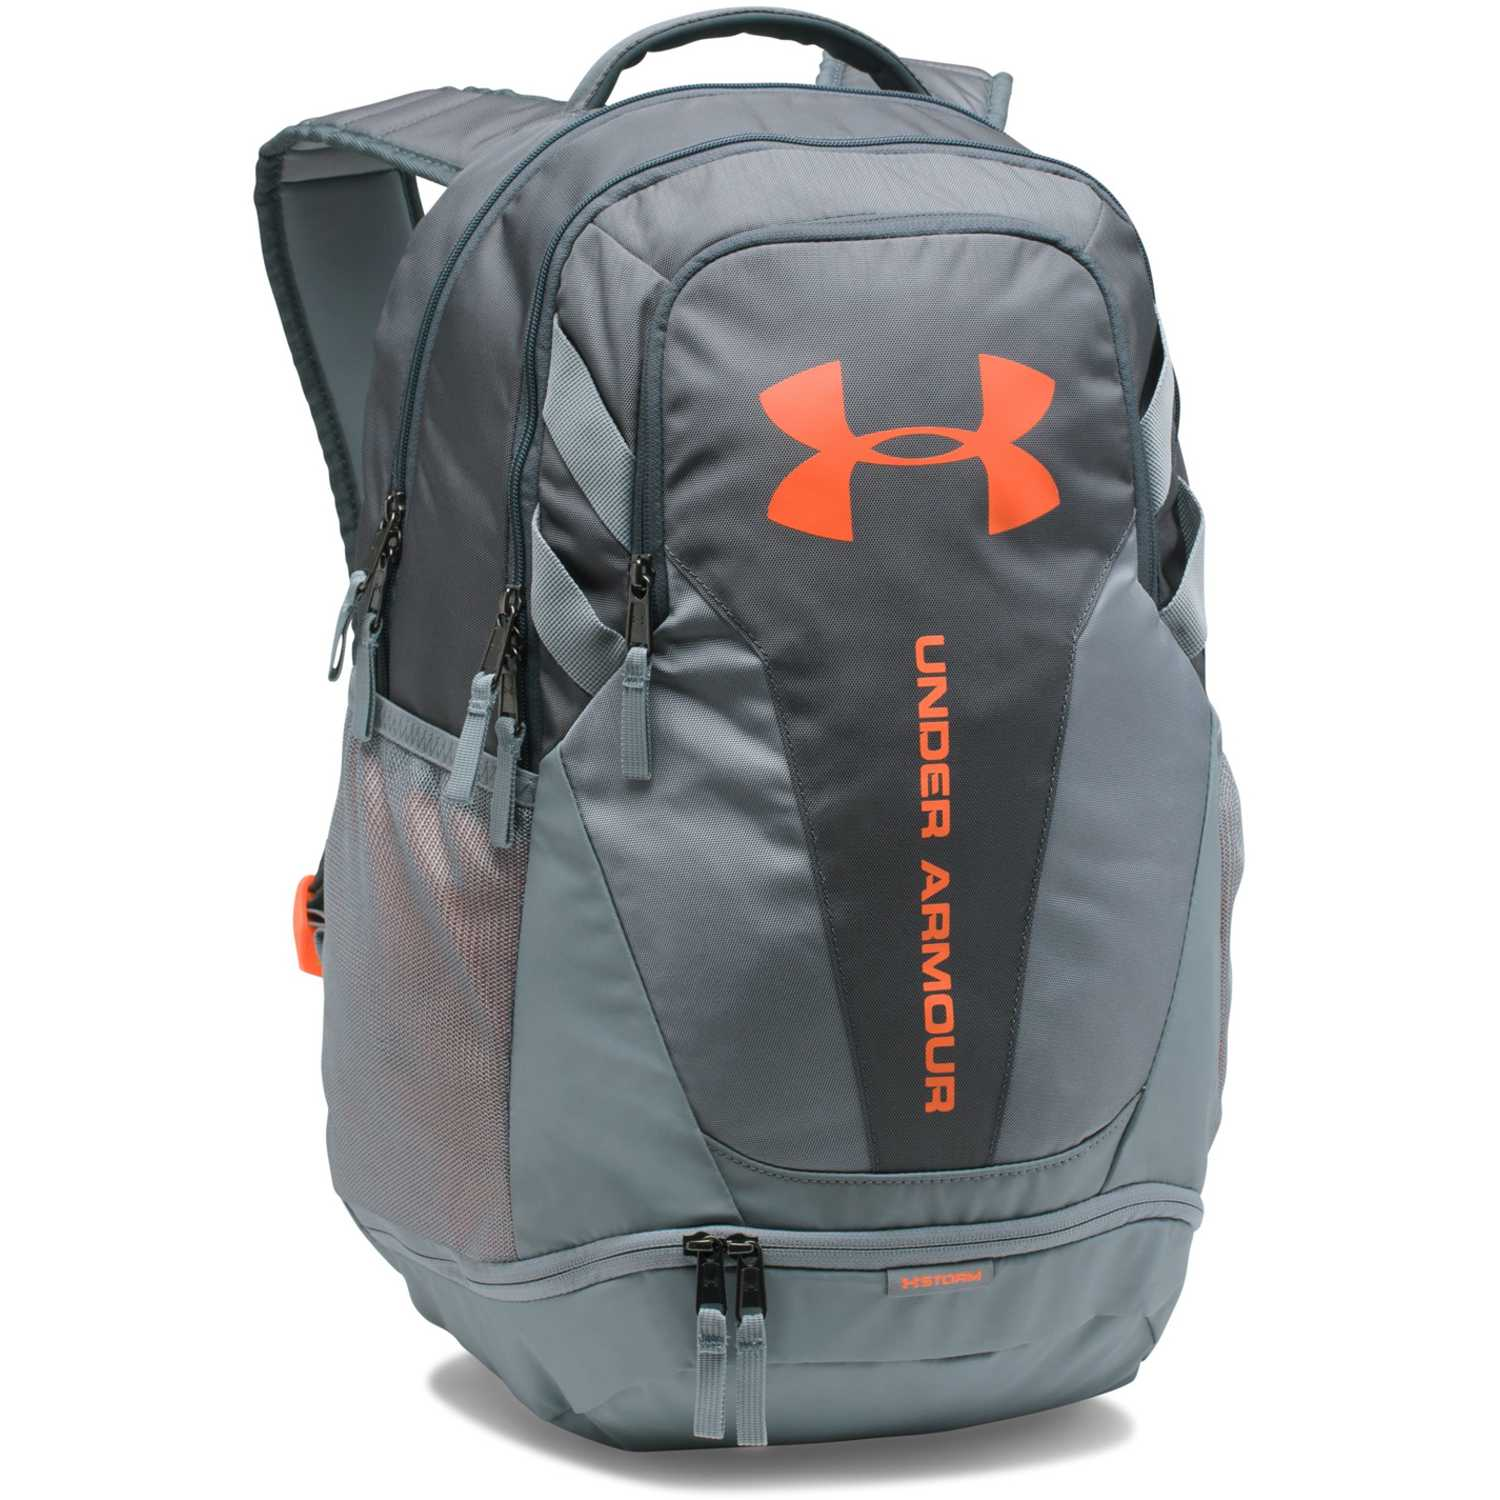 punto mental distancia  Under Armour Ua Hustle 3.0 Gris / naranja Mochilas multipropósitos |  platanitos.com